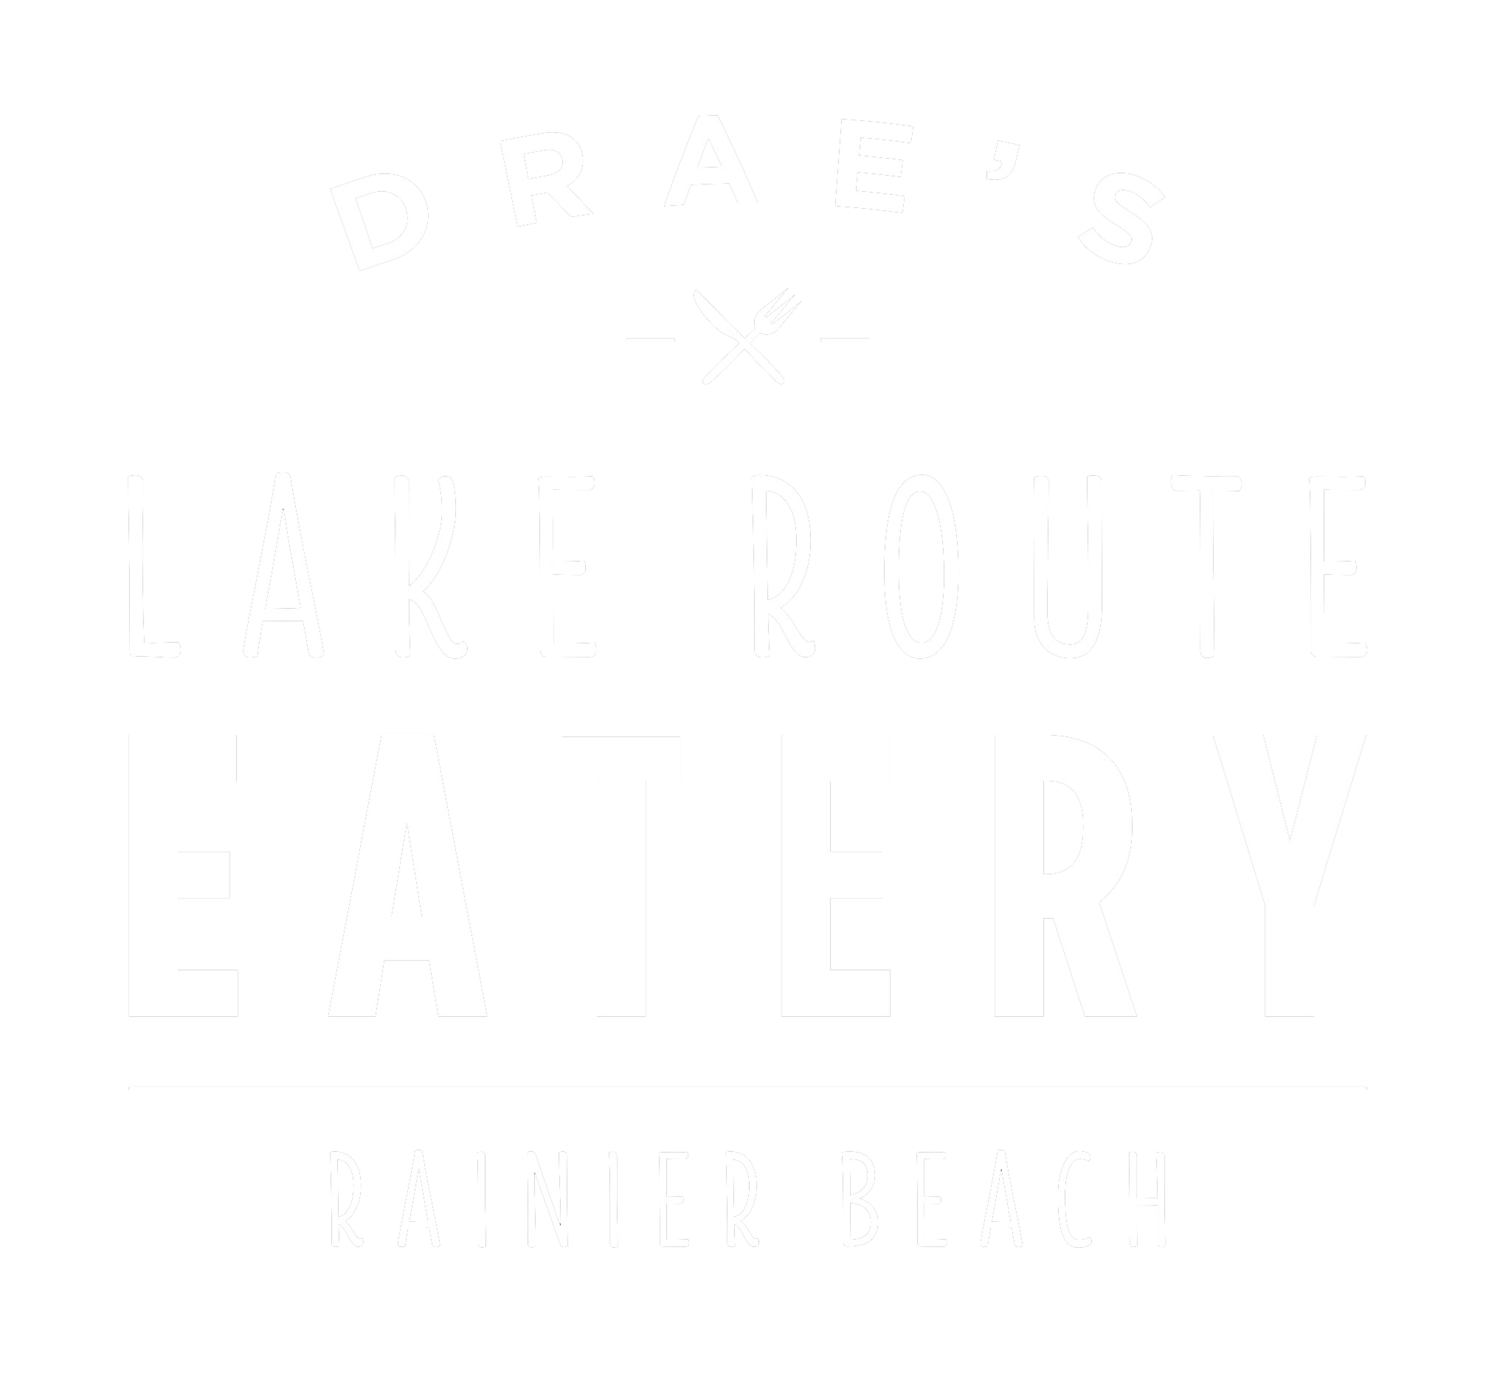 Drae's Lake Route Eatery